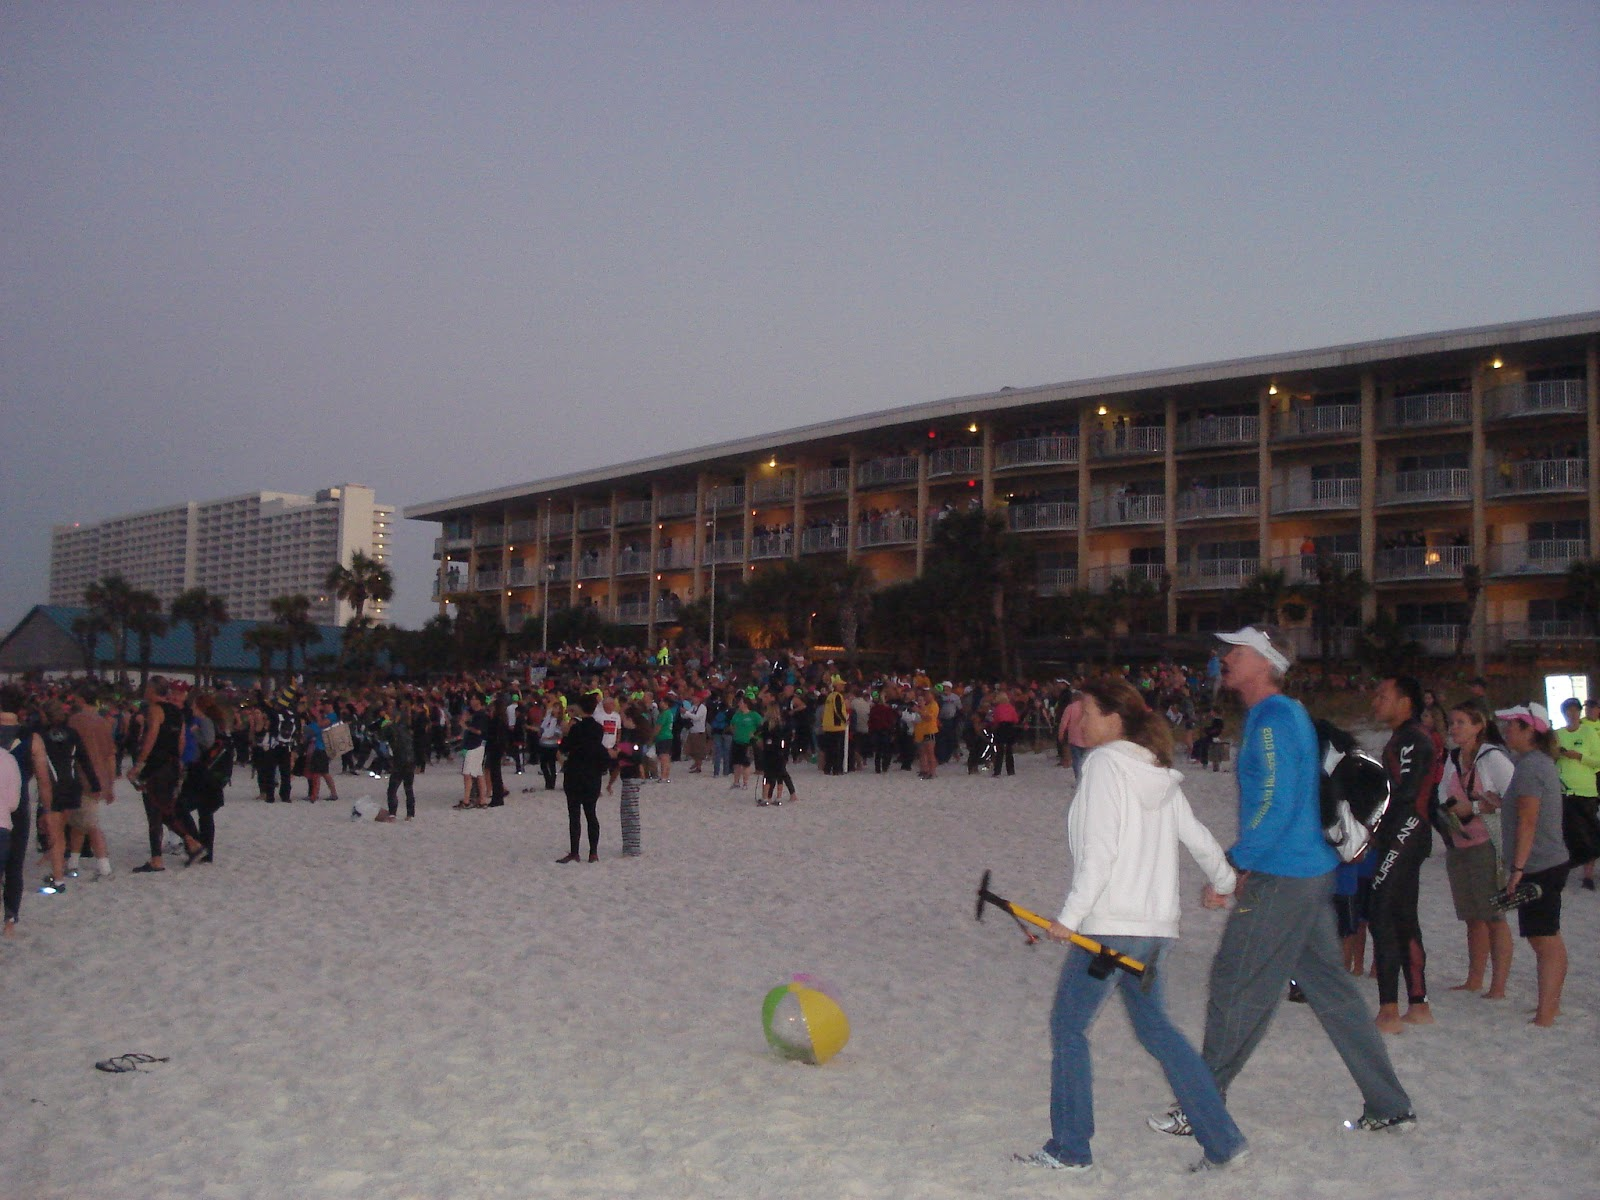 panama city beach girls Visit the the beach lovers beach on your panama city beach trip it's the ultimate location for a high school spring break learn more.